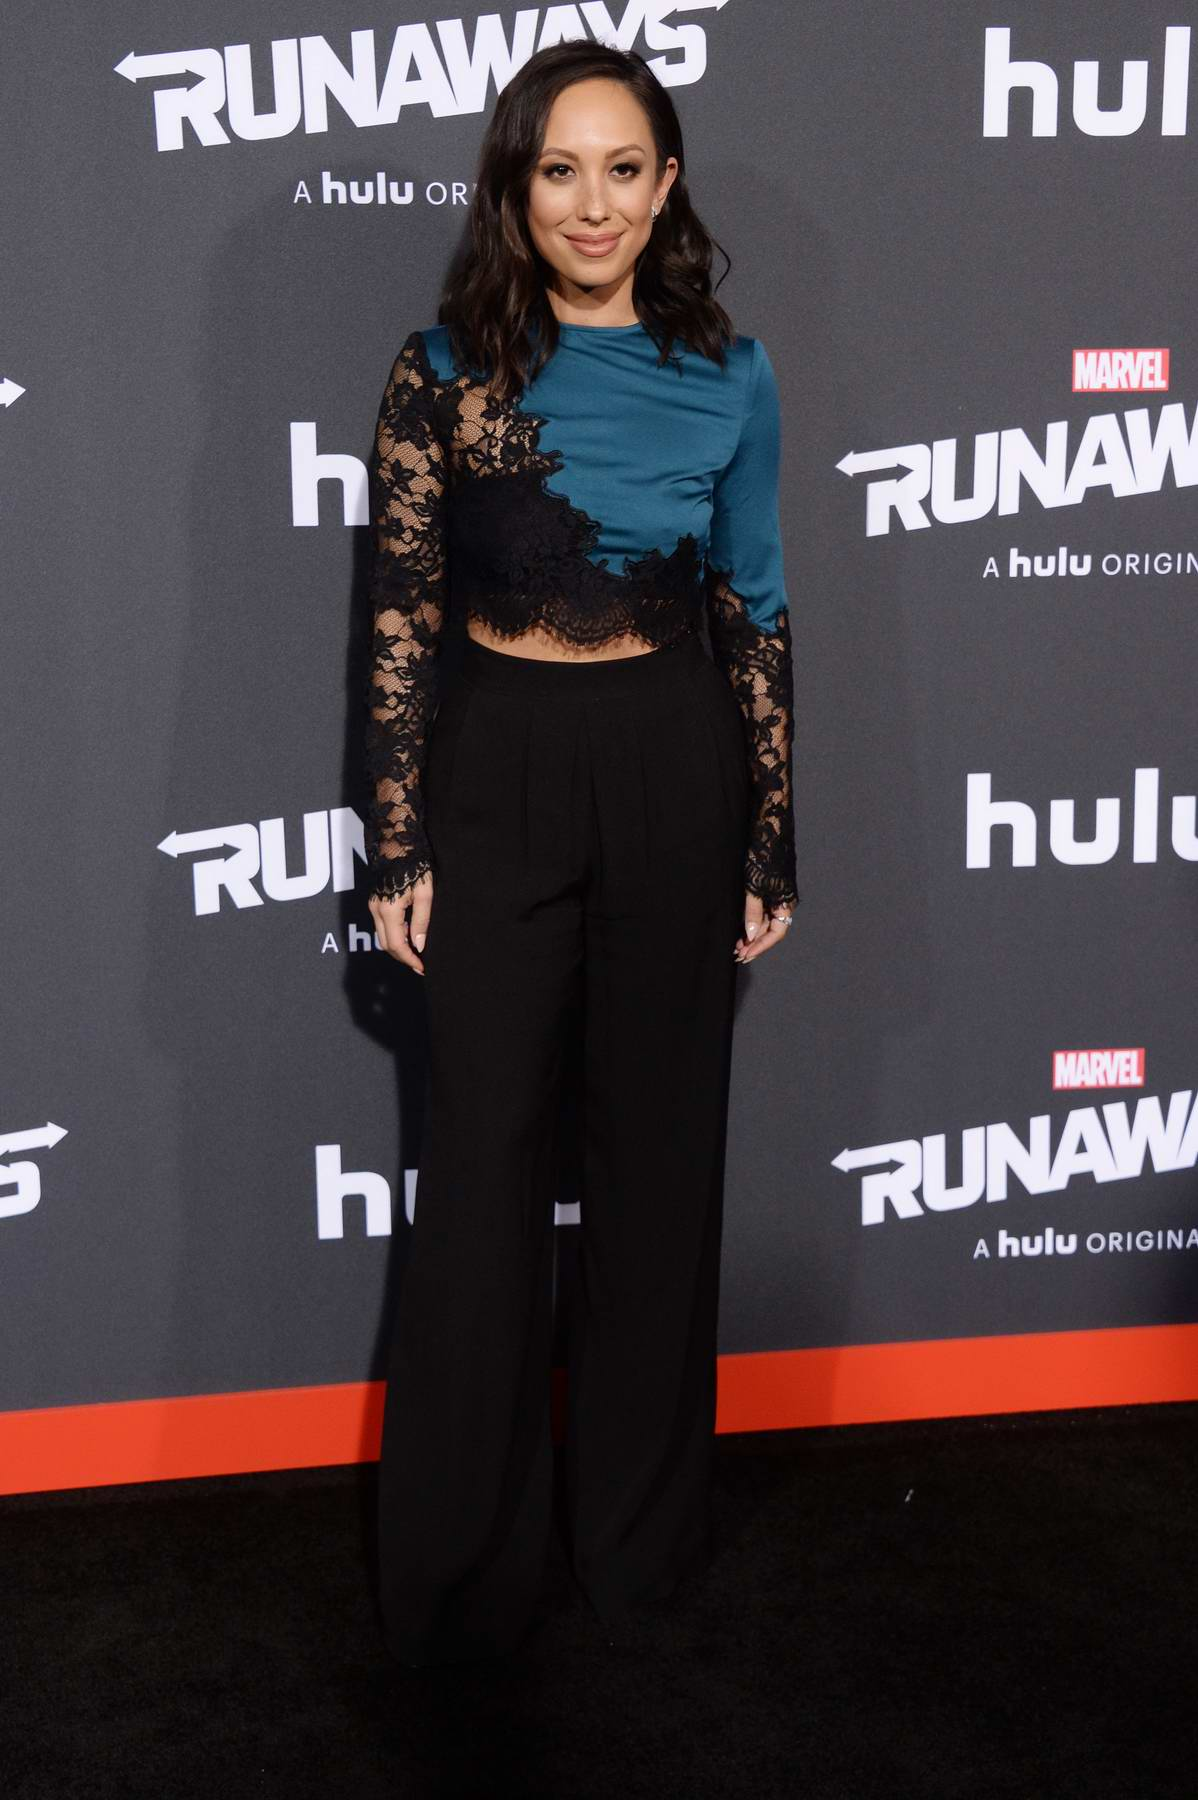 Cheryl Burke at the premiere of 'Runaways' in Los Angeles